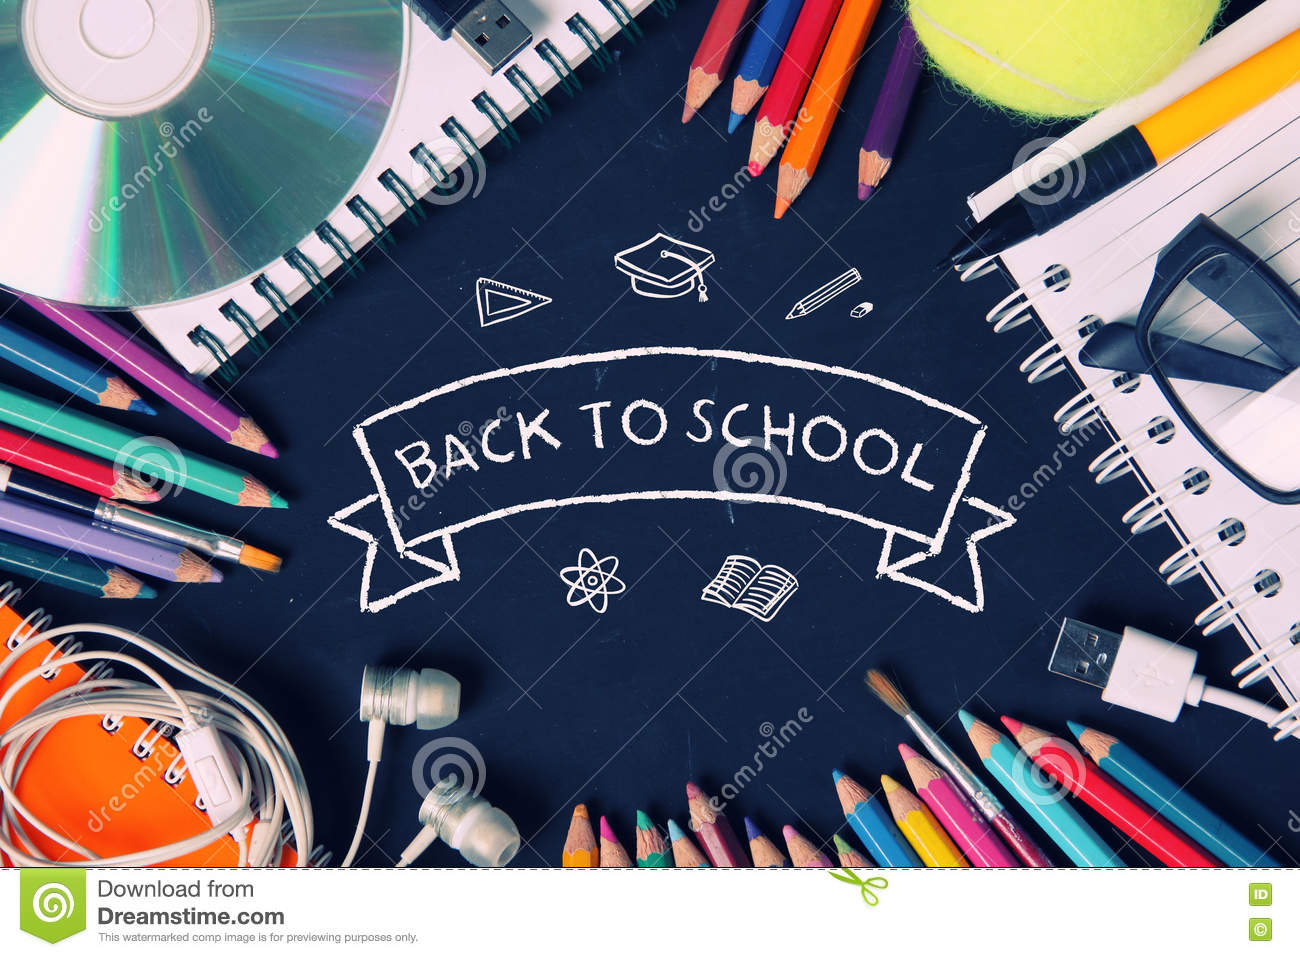 back to school wallpaper design in retro colors stock